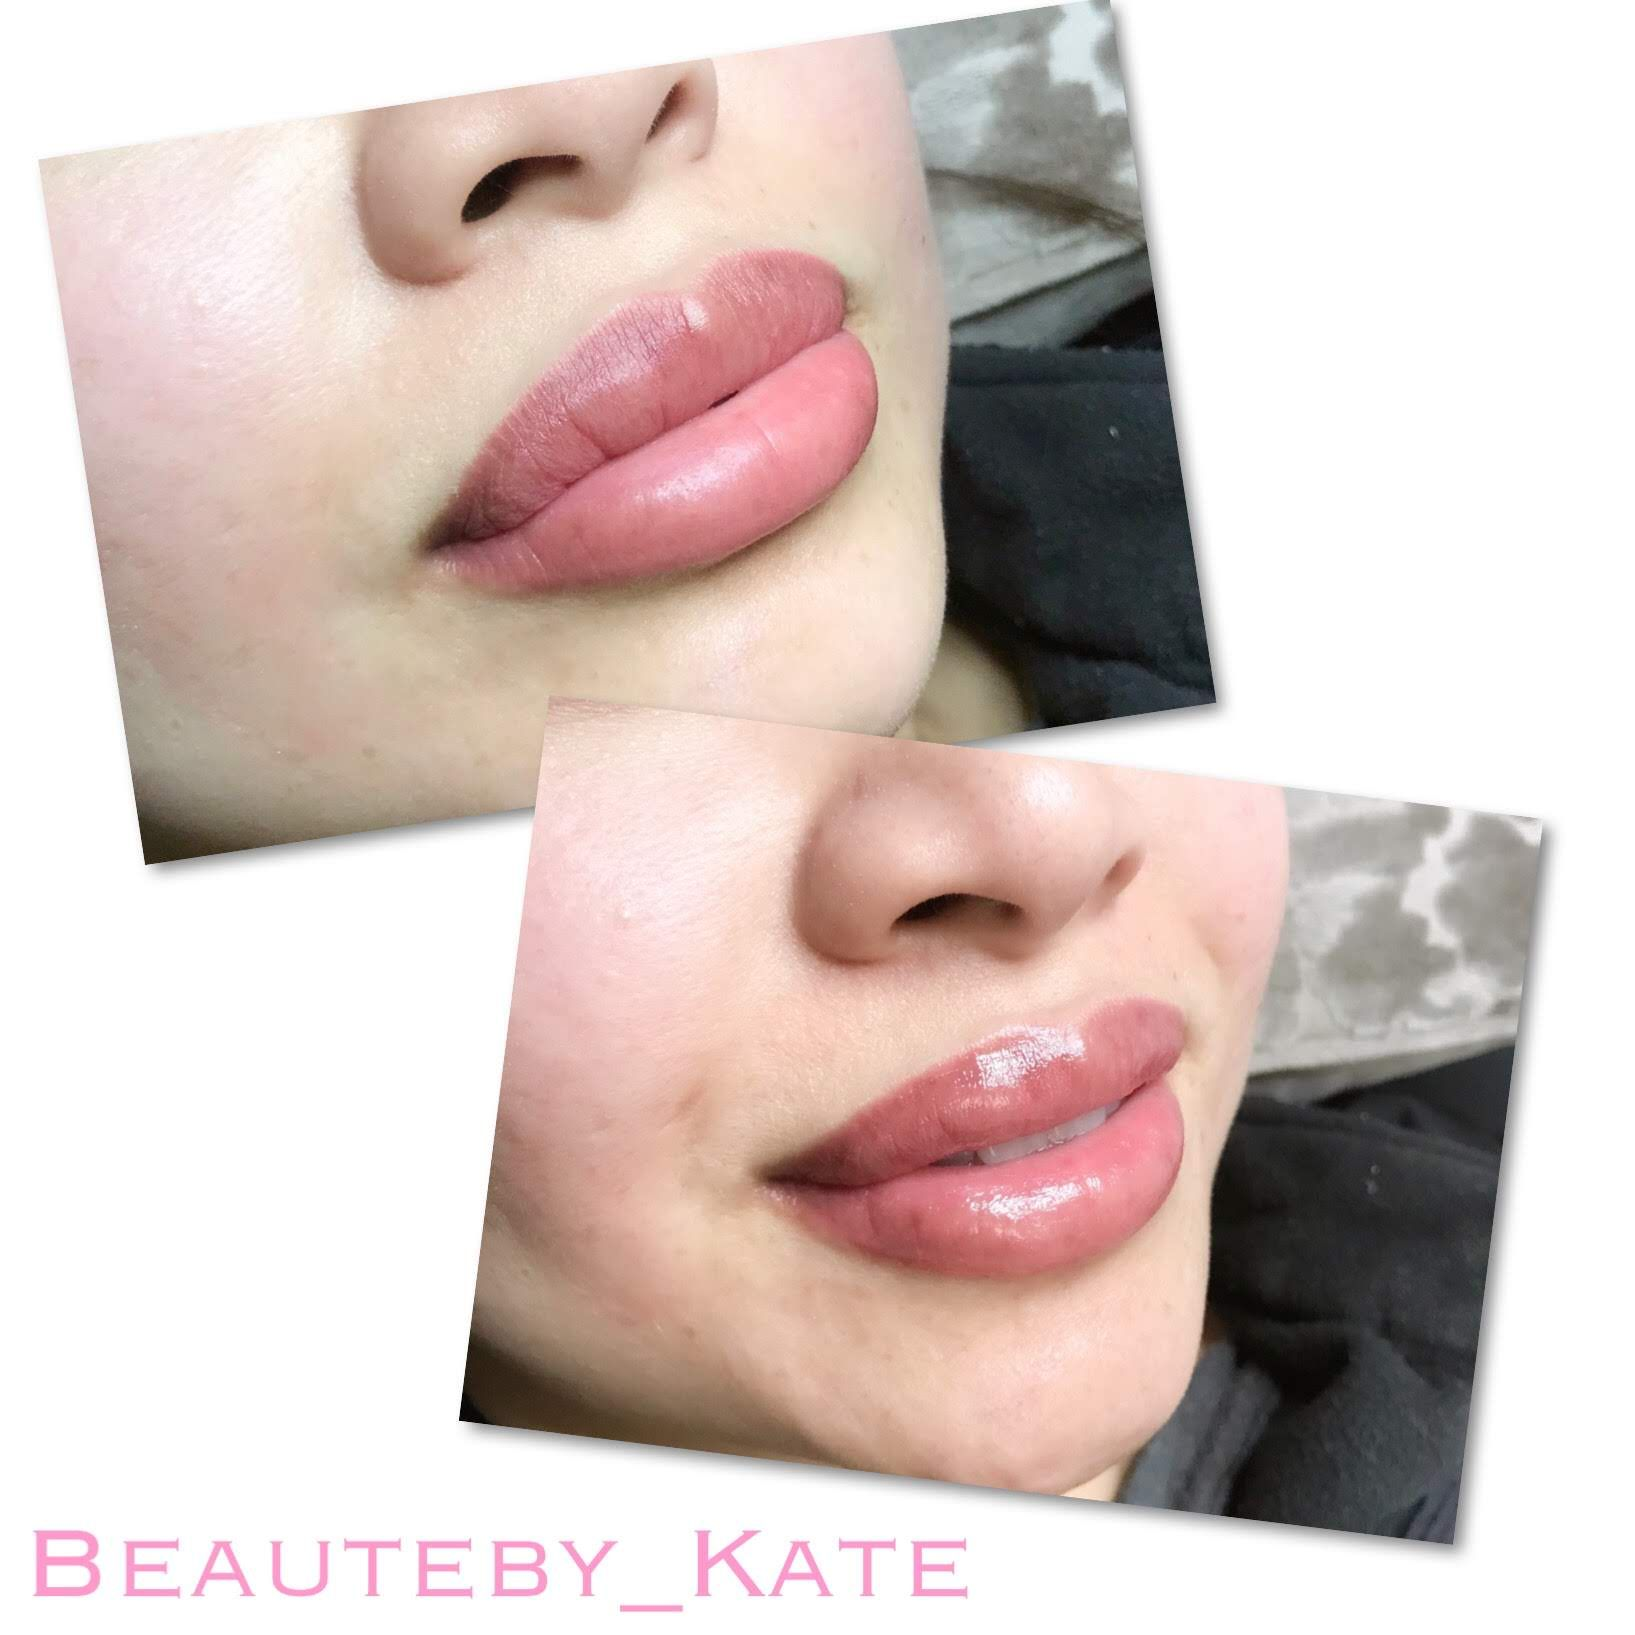 Juicy Lip Blush Aquarelle Lips Semi Permanent Lips Tattoo